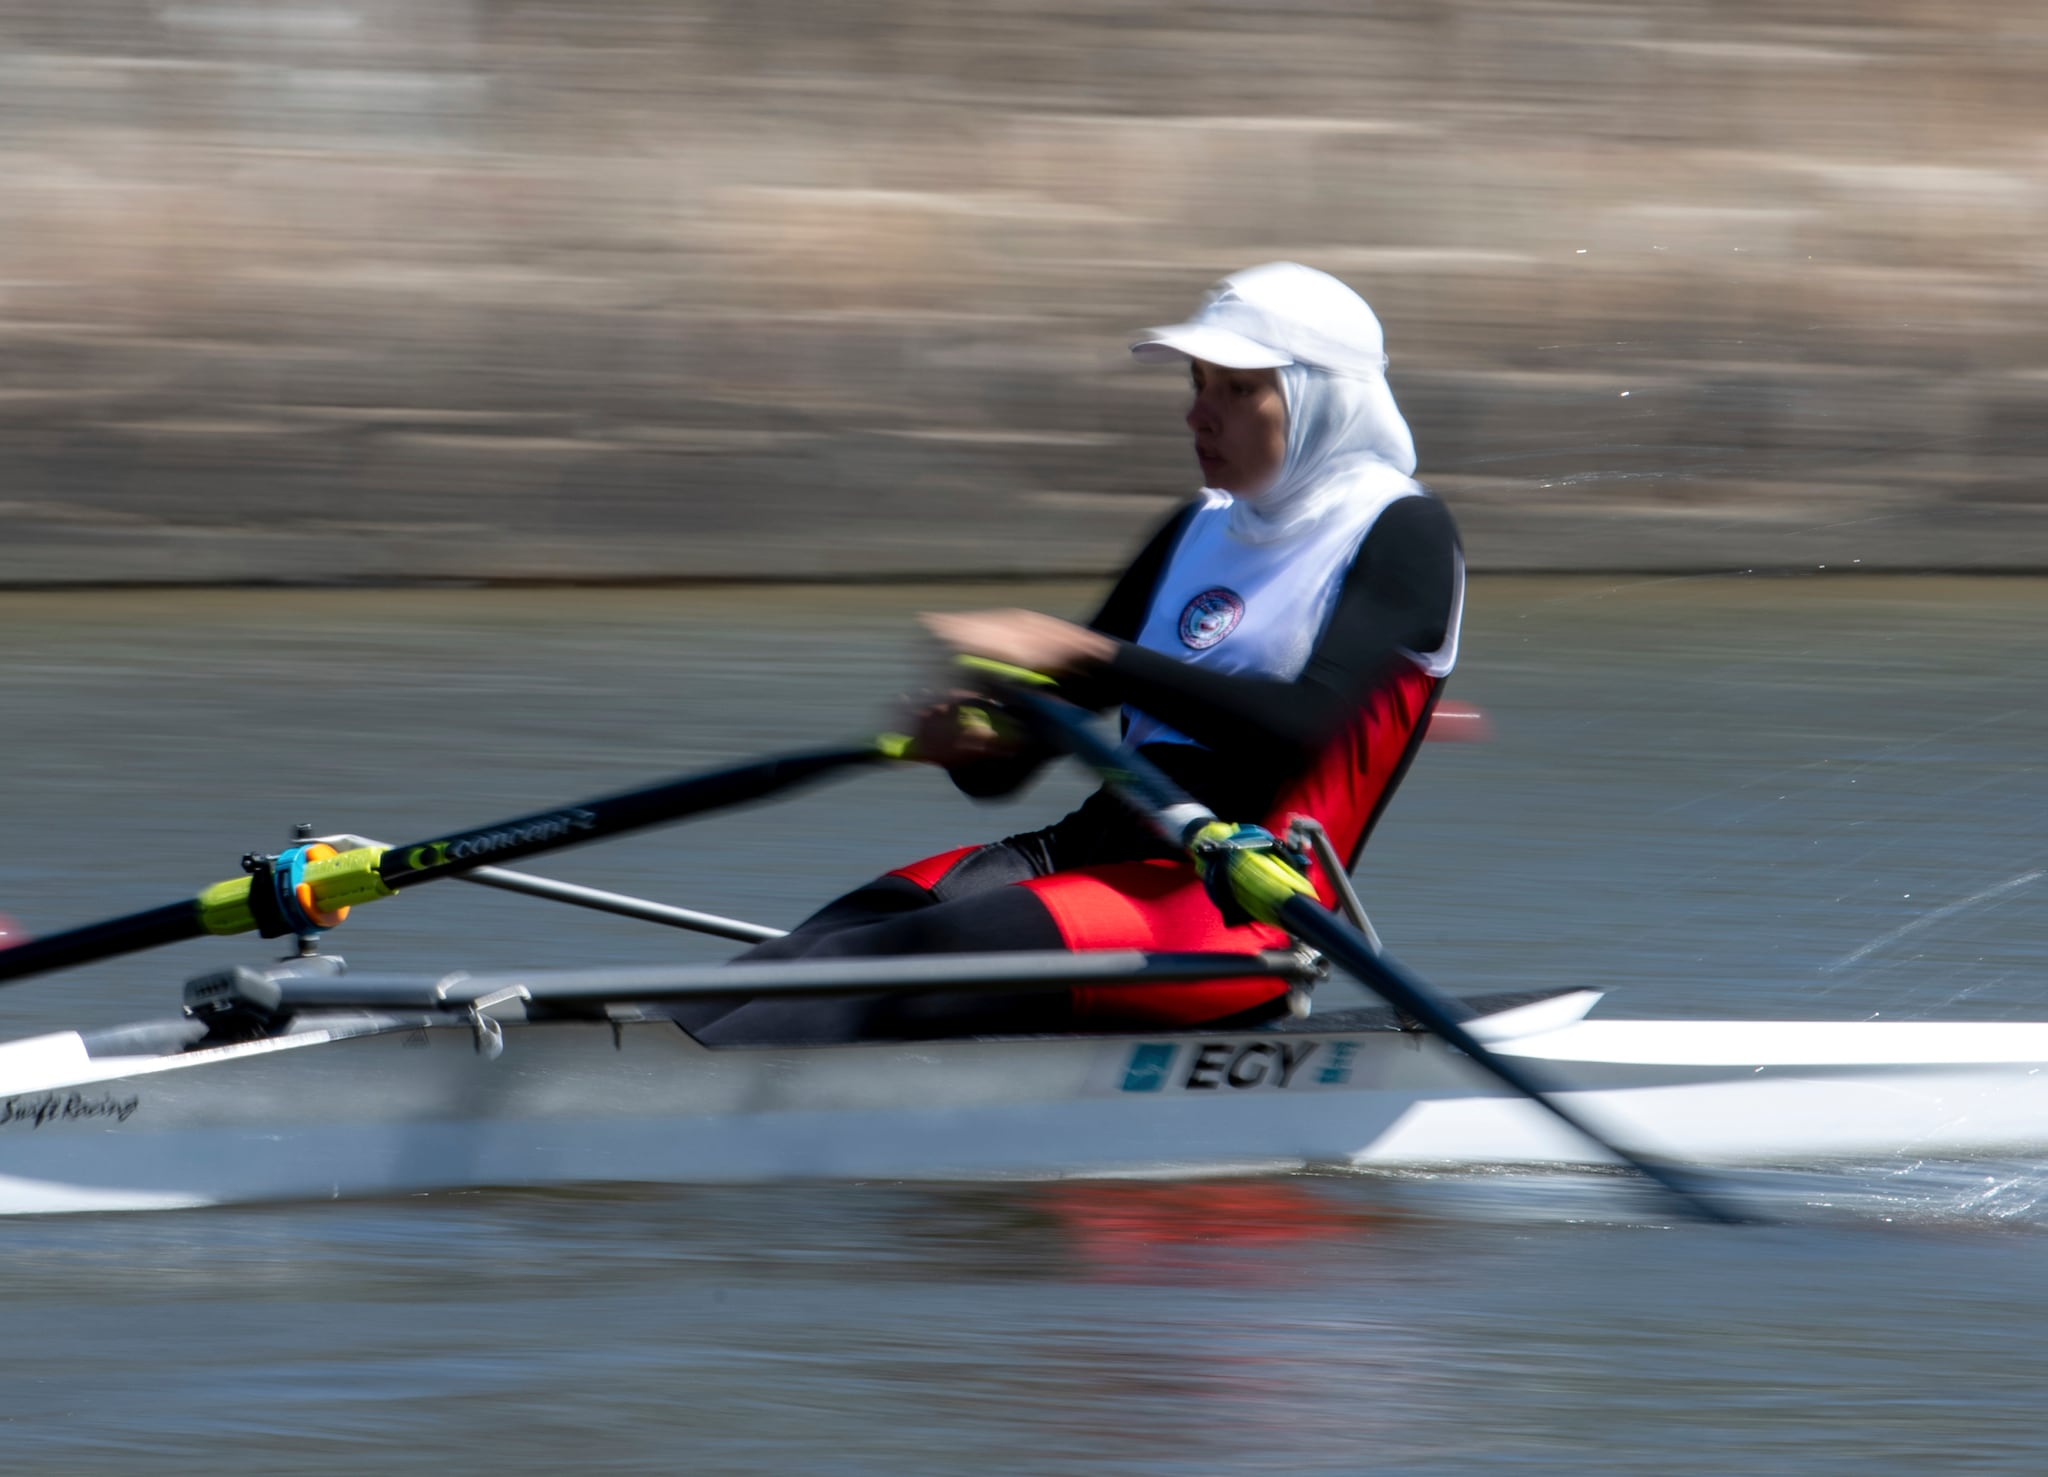 Dareen Mahmoud Mohamed from Egypt, rows in EGY in the round 6 final E race in the rowing women's single sculls at Diques Puerto Madero, during the Youth Olympic Summer Games in Buenos Aires, Argentina, Wednesday, Oct. 10, 2018. (Jonathan Nackstrand/OIS/IOC via AP)